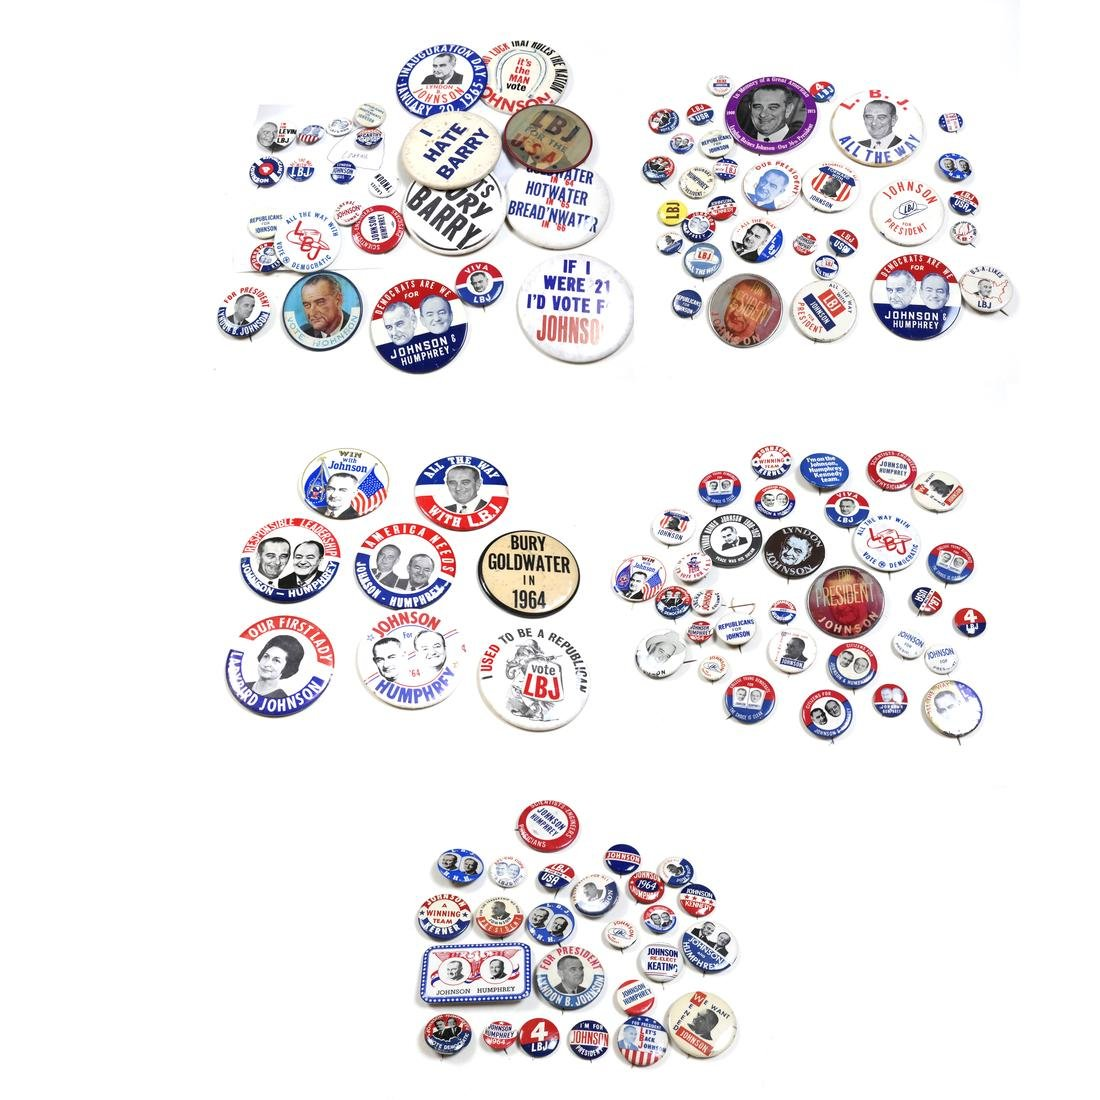 LARGE GROUP OF LYNDON B. JOHNSON 1964 CAMPAIGN BUTTONS